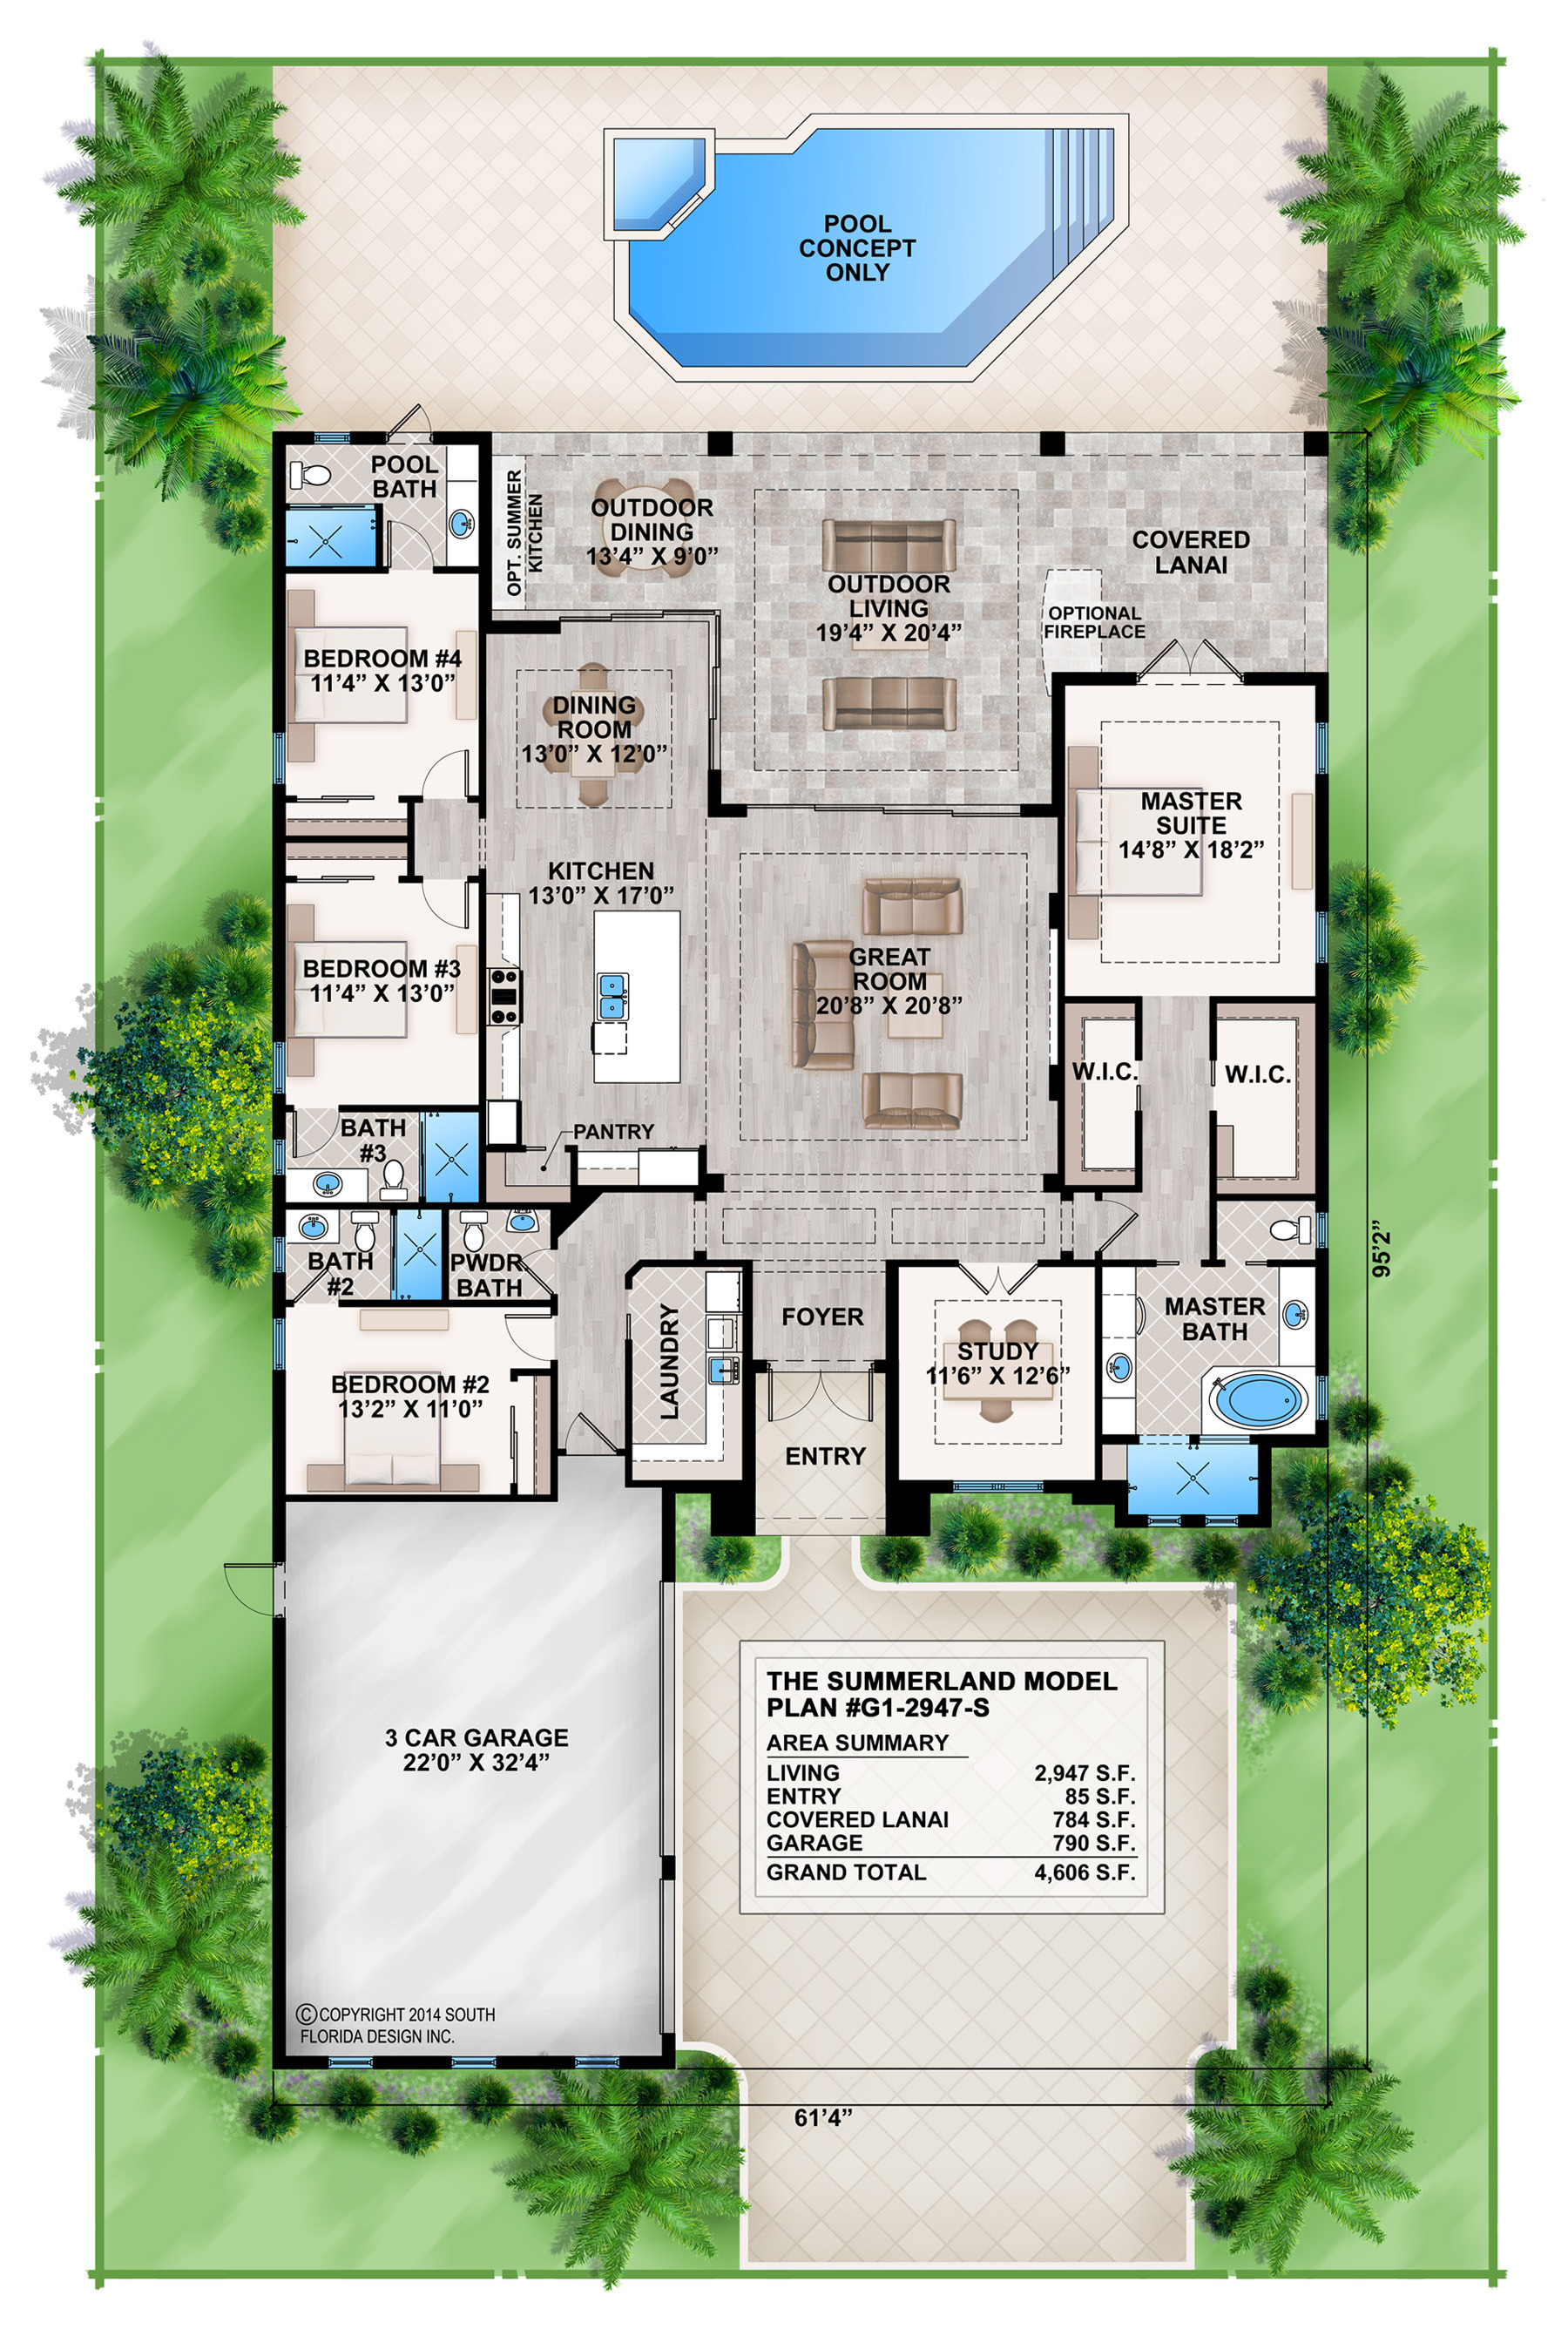 House Plans In Florida Beautiful south Florida Designs Coastal Contemporary House Plan south